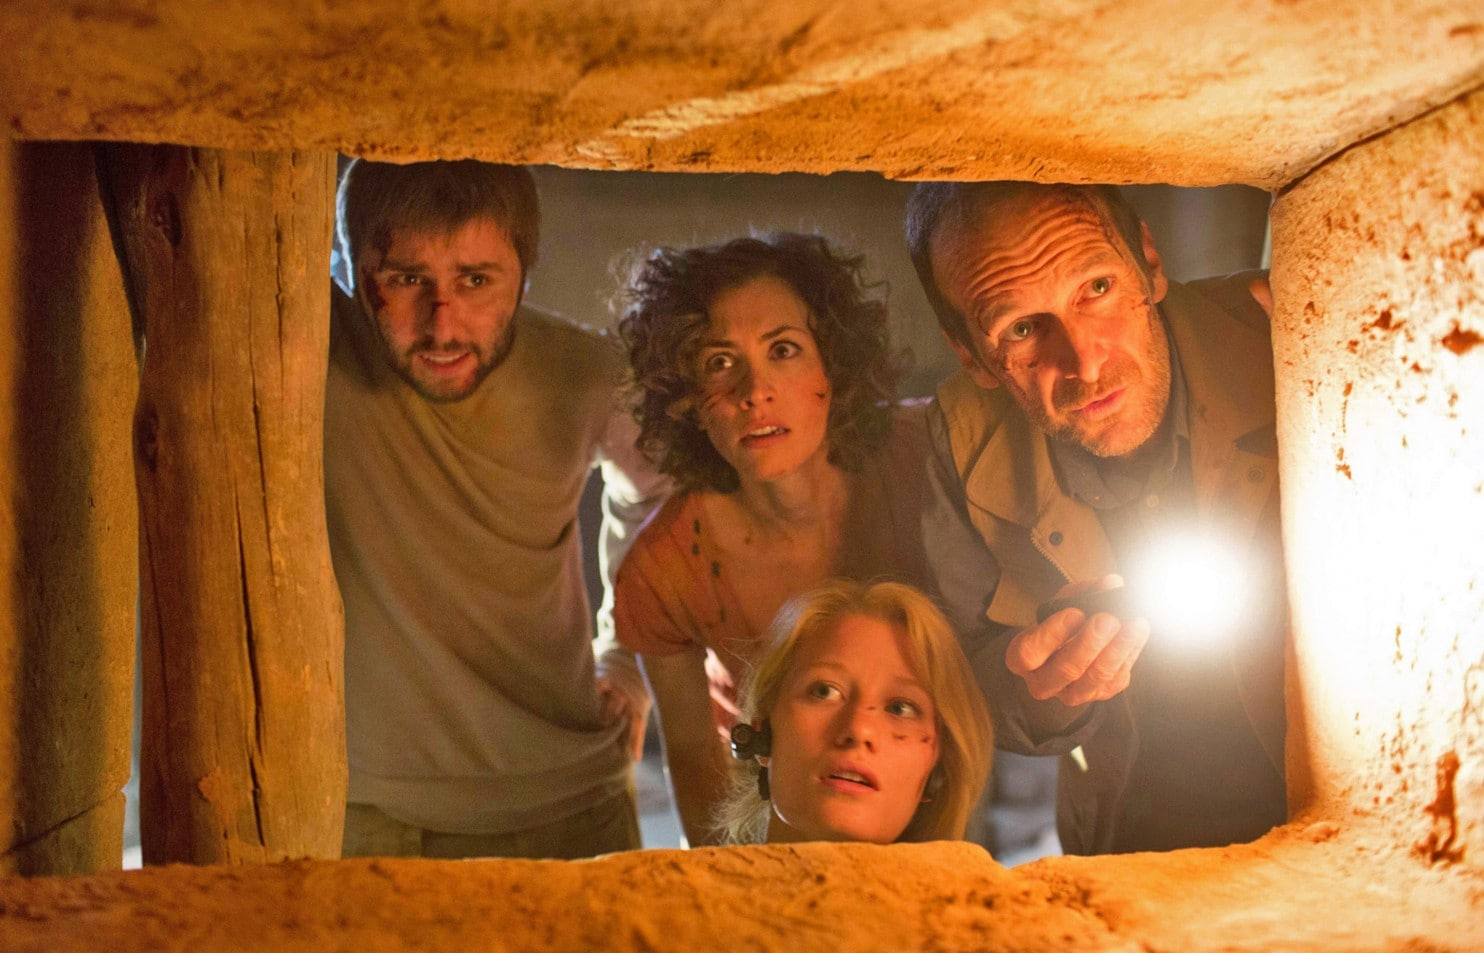 Venturing into an Ancient Egyptian tomb - (l to r) James Buckley, Christa-Marie Nicola, Ashley Hinshaw and Denis O'Hare in The Pyramid (2014)